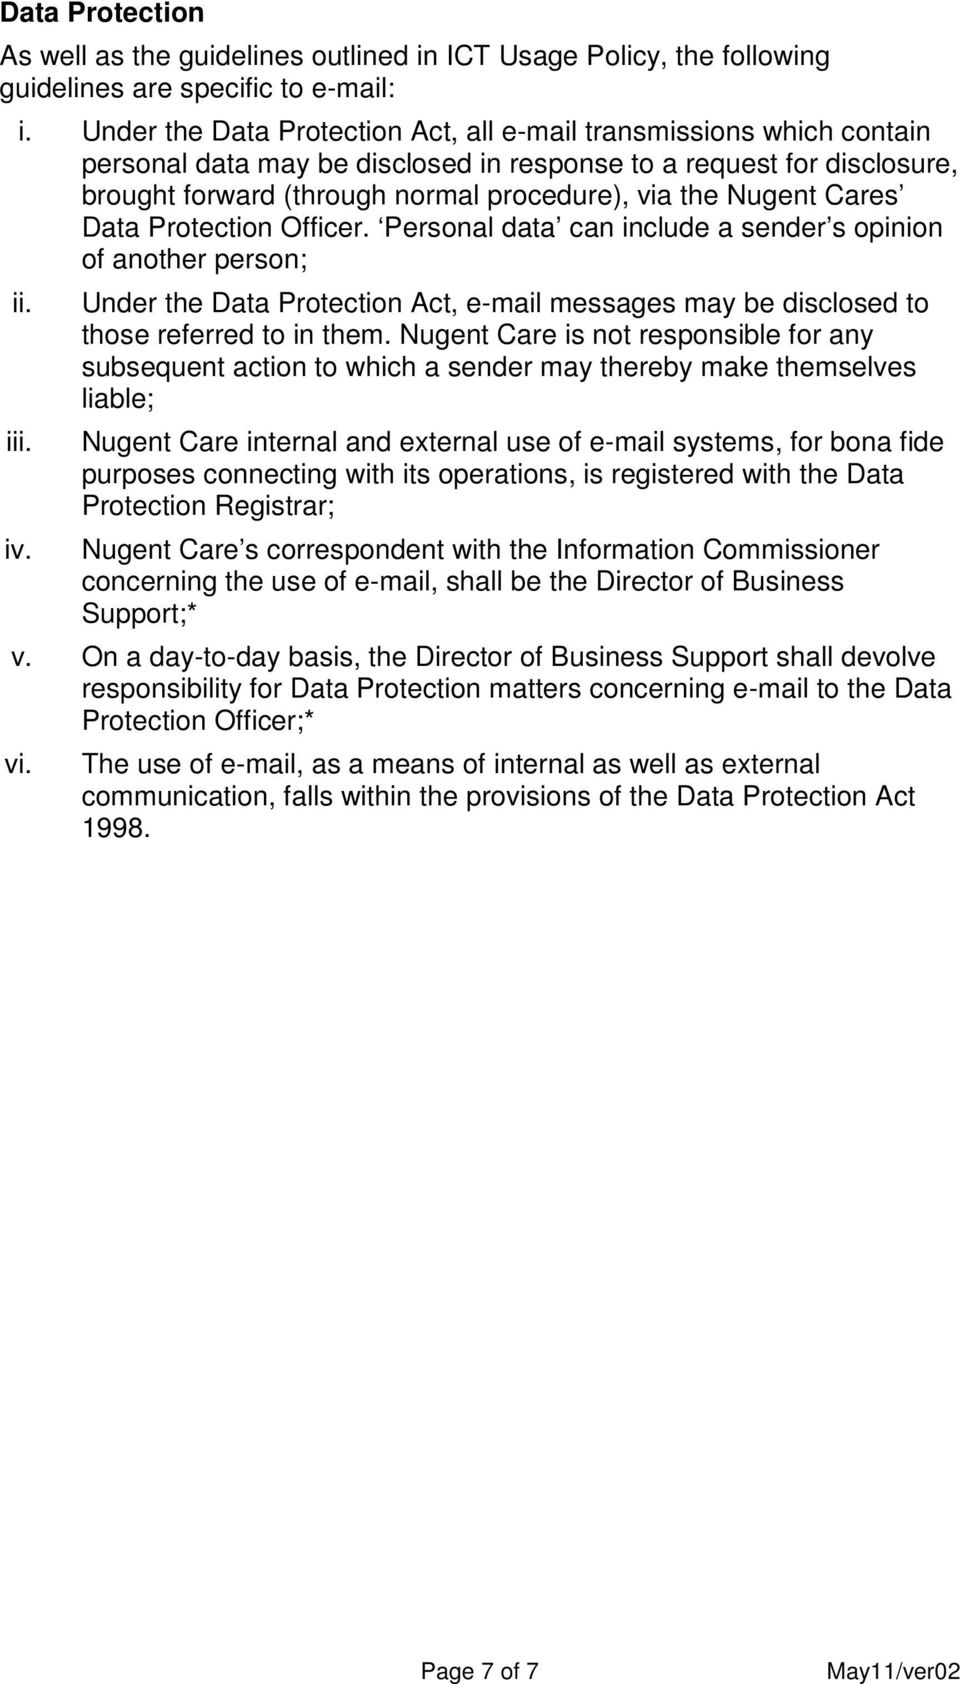 Nugent Cares Data Protection Officer. Personal data can include a sender s opinion of another person; ii. Under the Data Protection Act, e-mail messages may be disclosed to those referred to in them.